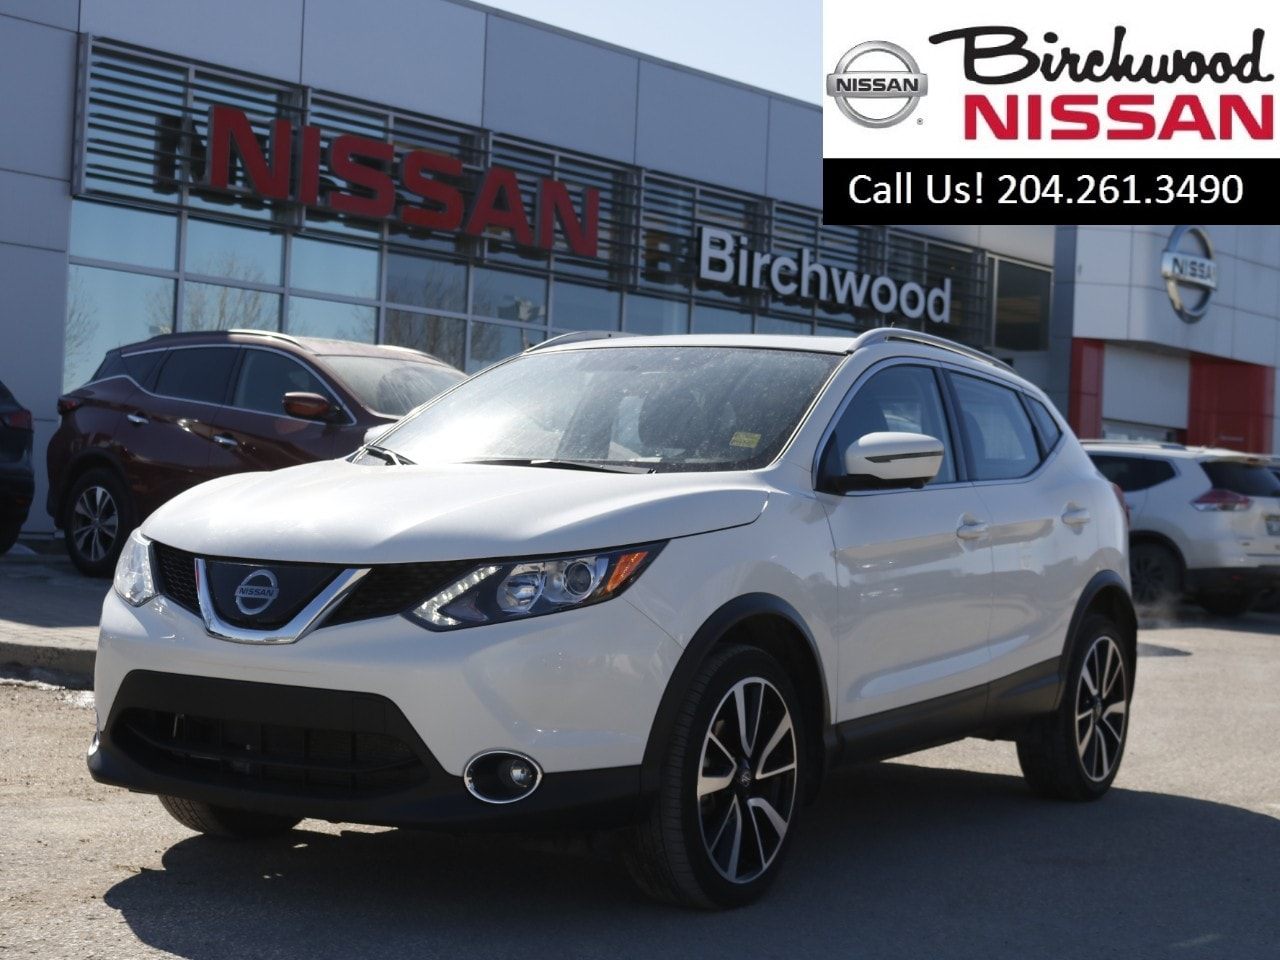 2018 Nissan Qashqai SL AWD Save Thousands From New! Sedan